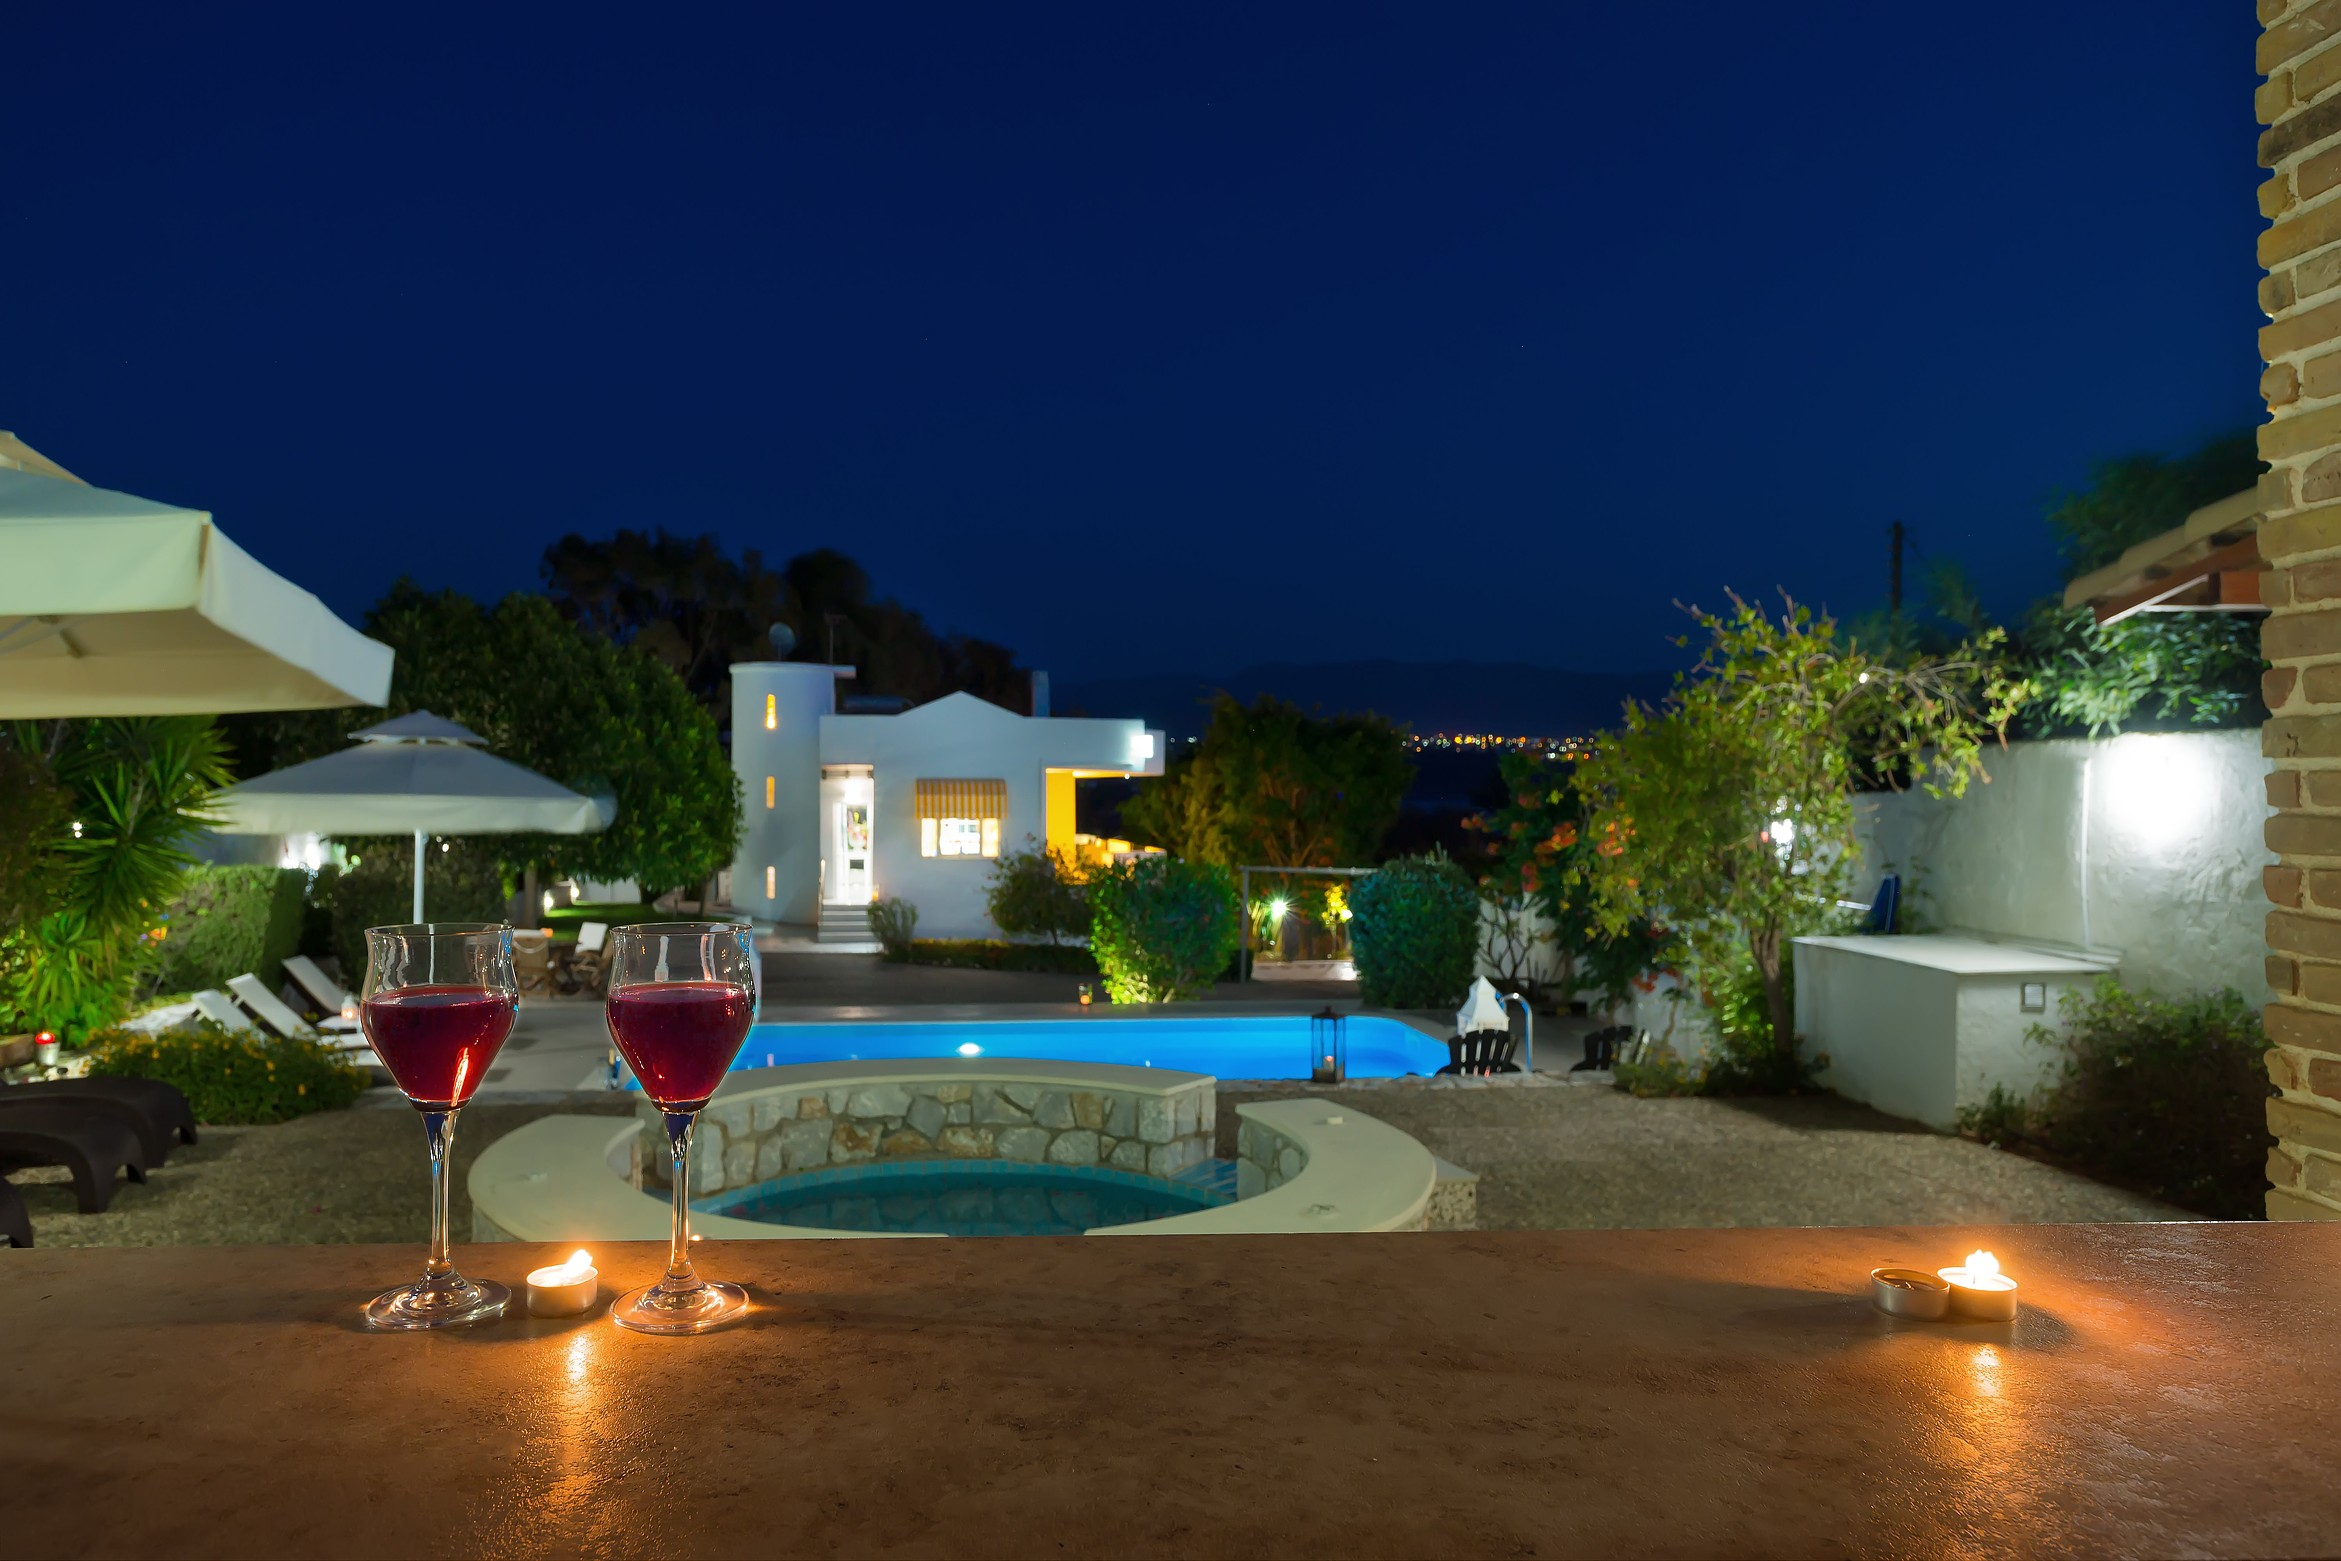 Villa Plumeria garden and pool view by night